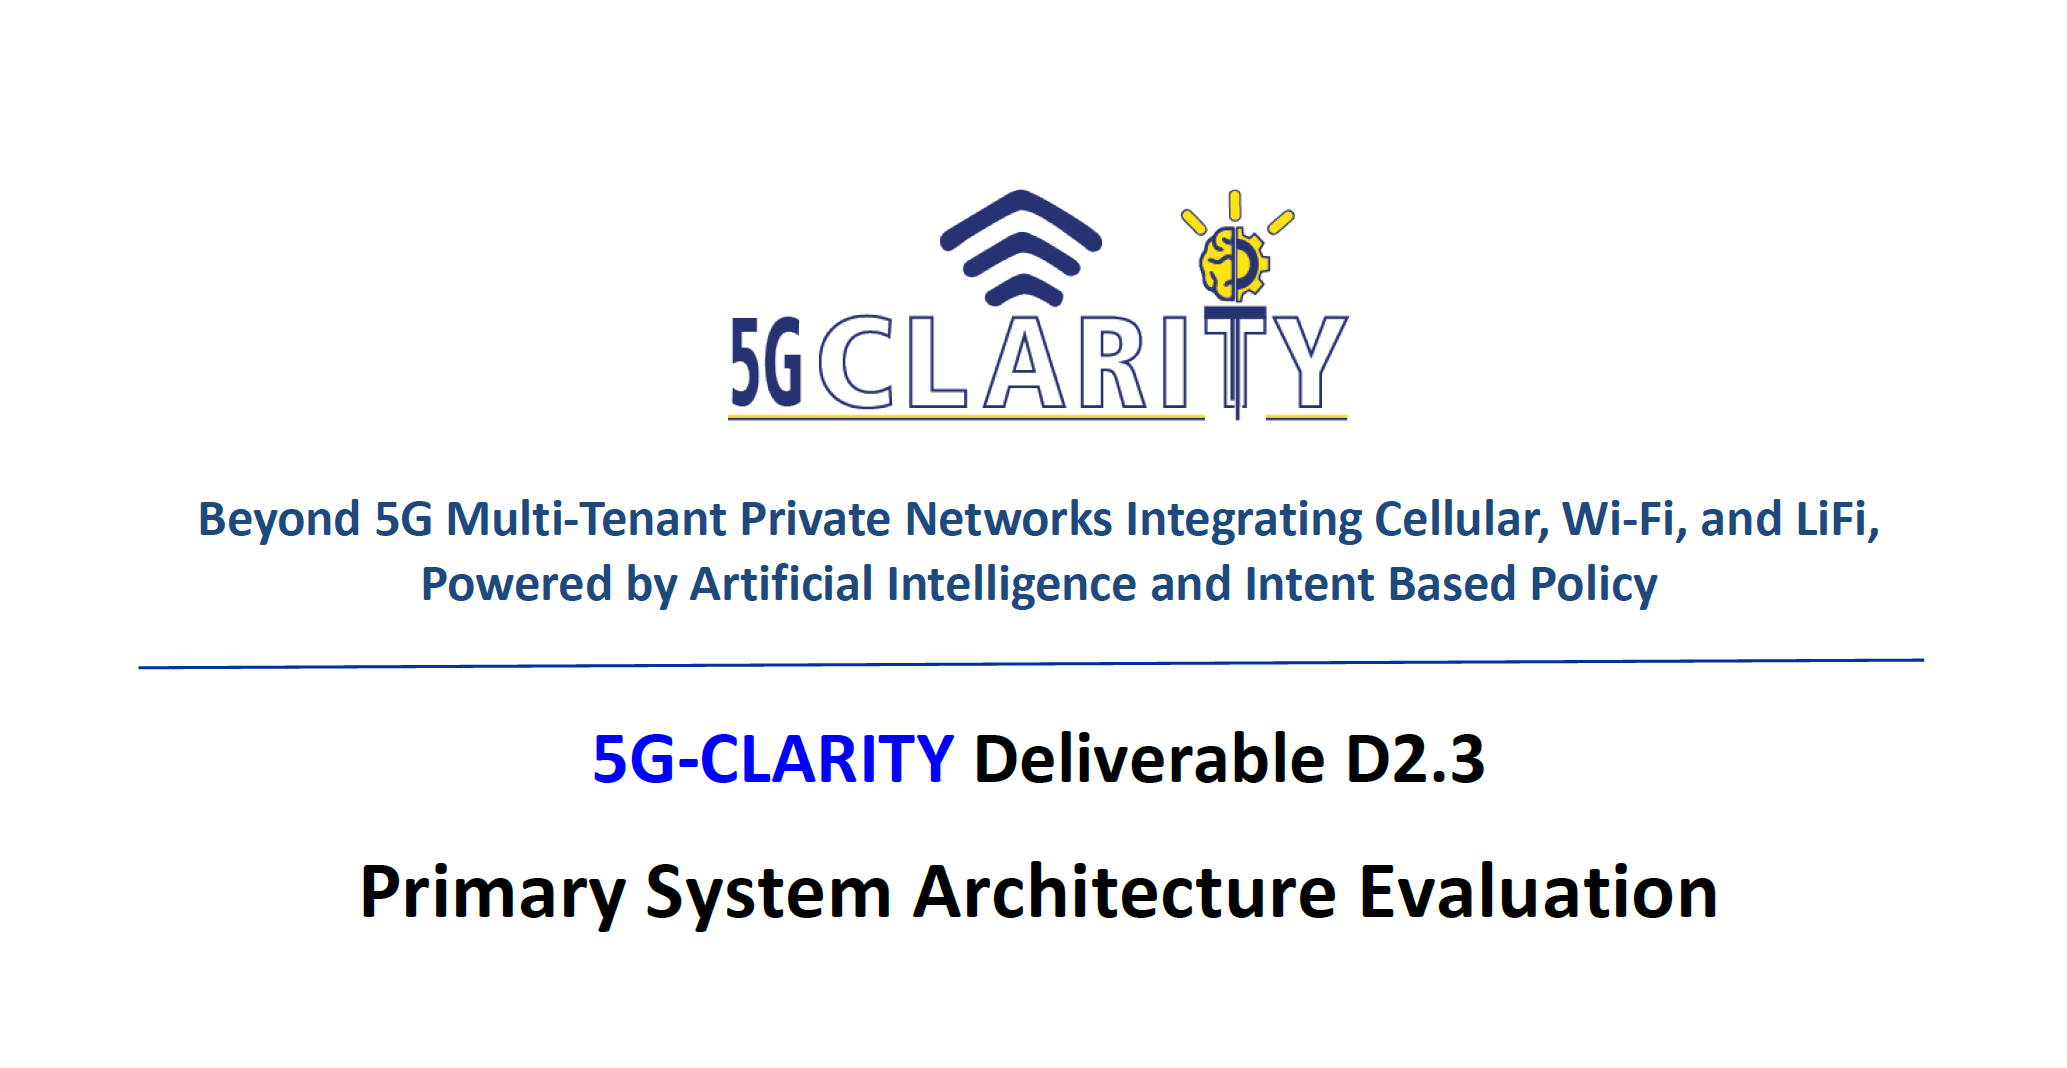 Primary evaluation of 5G-CLARITY architecture is now available to public!